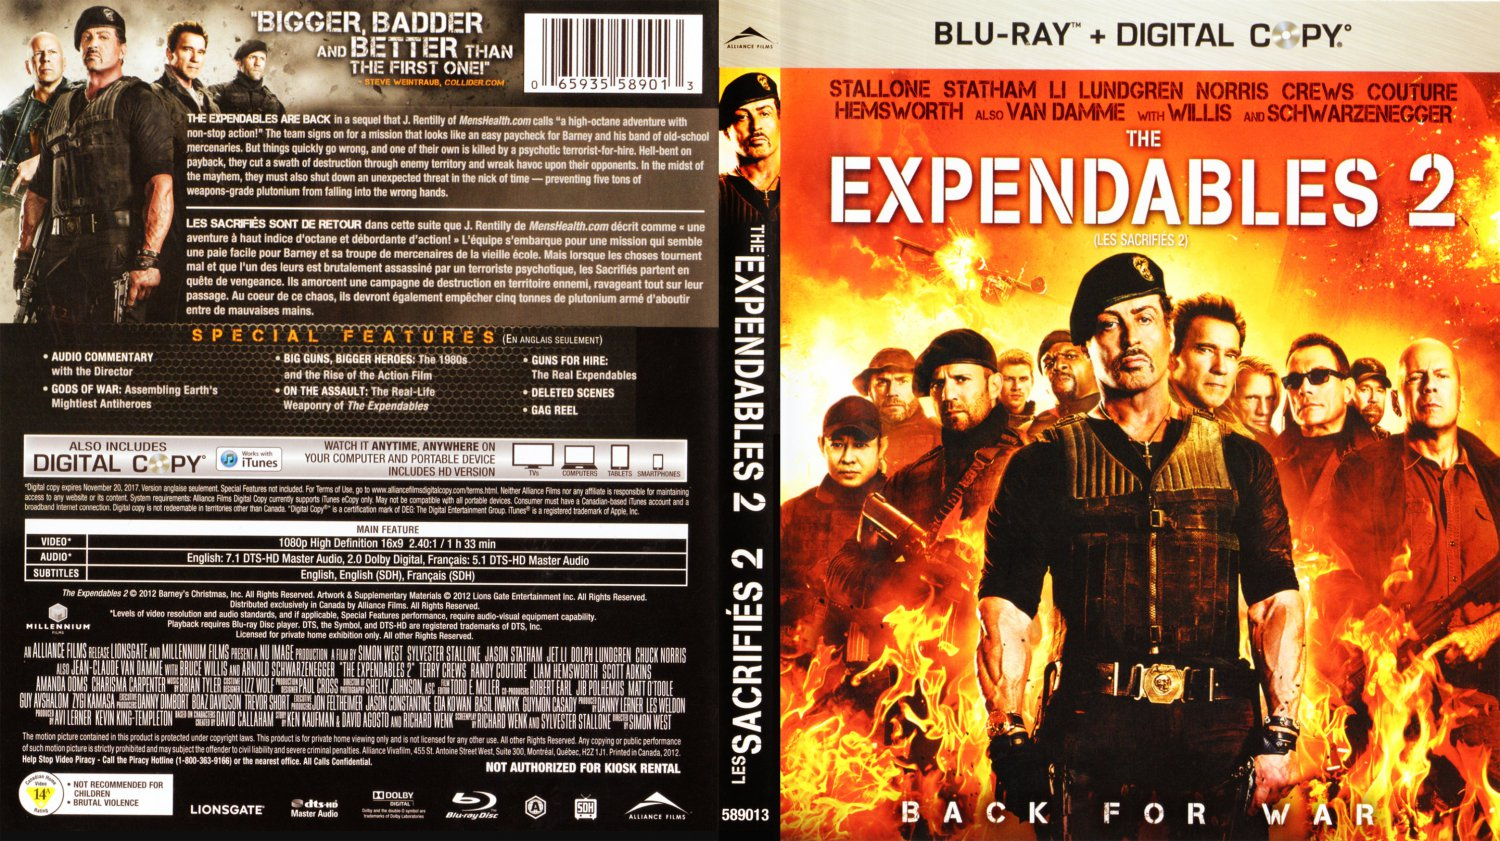 the expendables 2 dvd. the gallery for --> the expendables 2 dvd - eydt